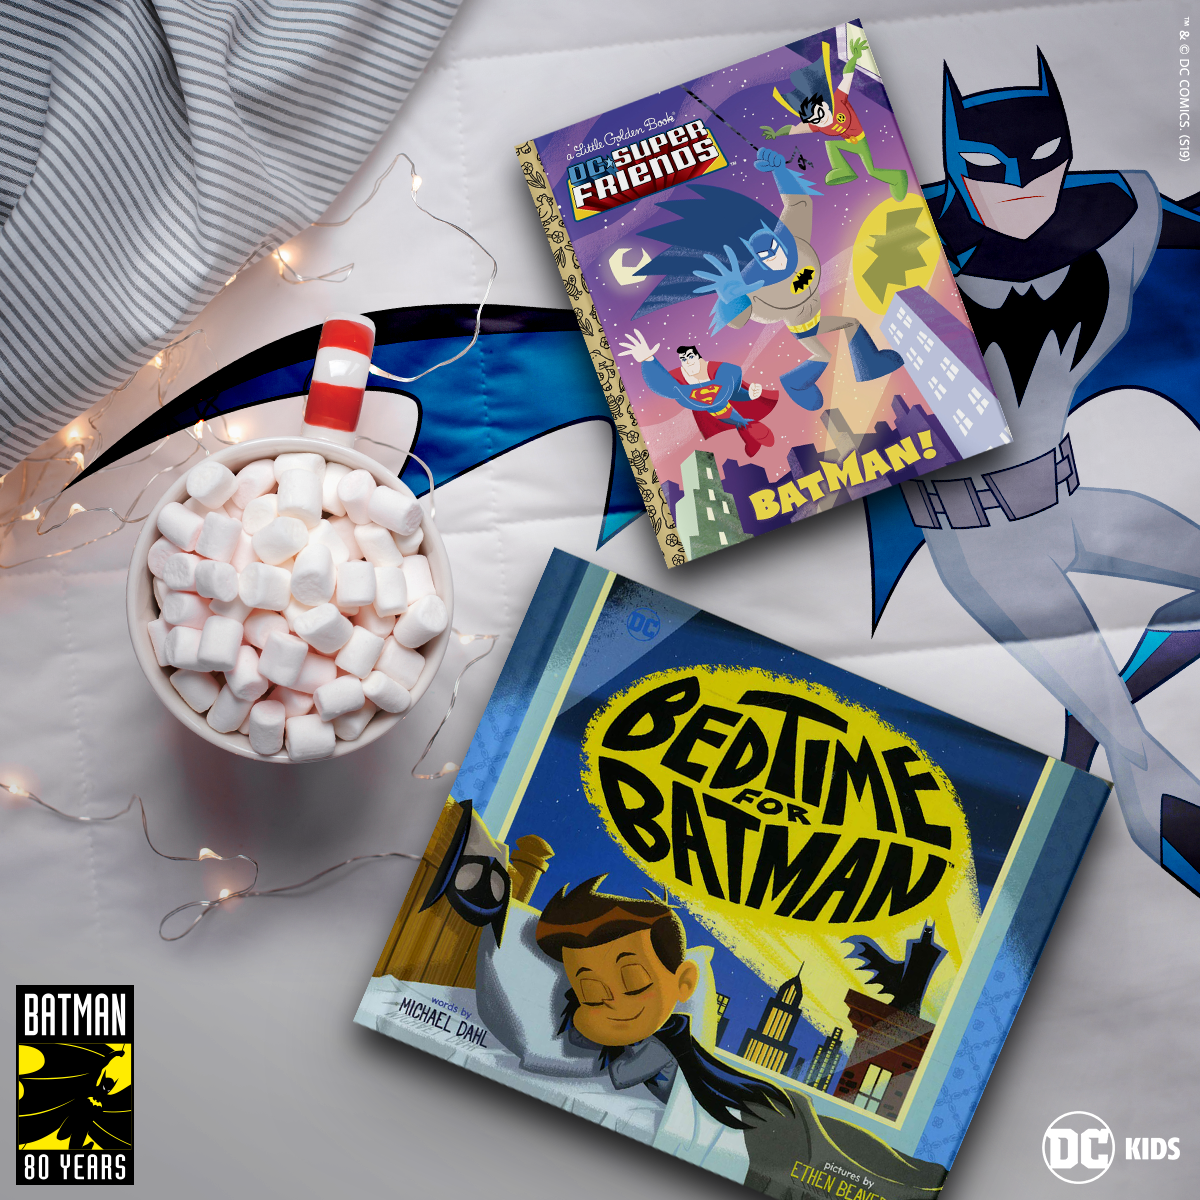 Batman picture books on a bed